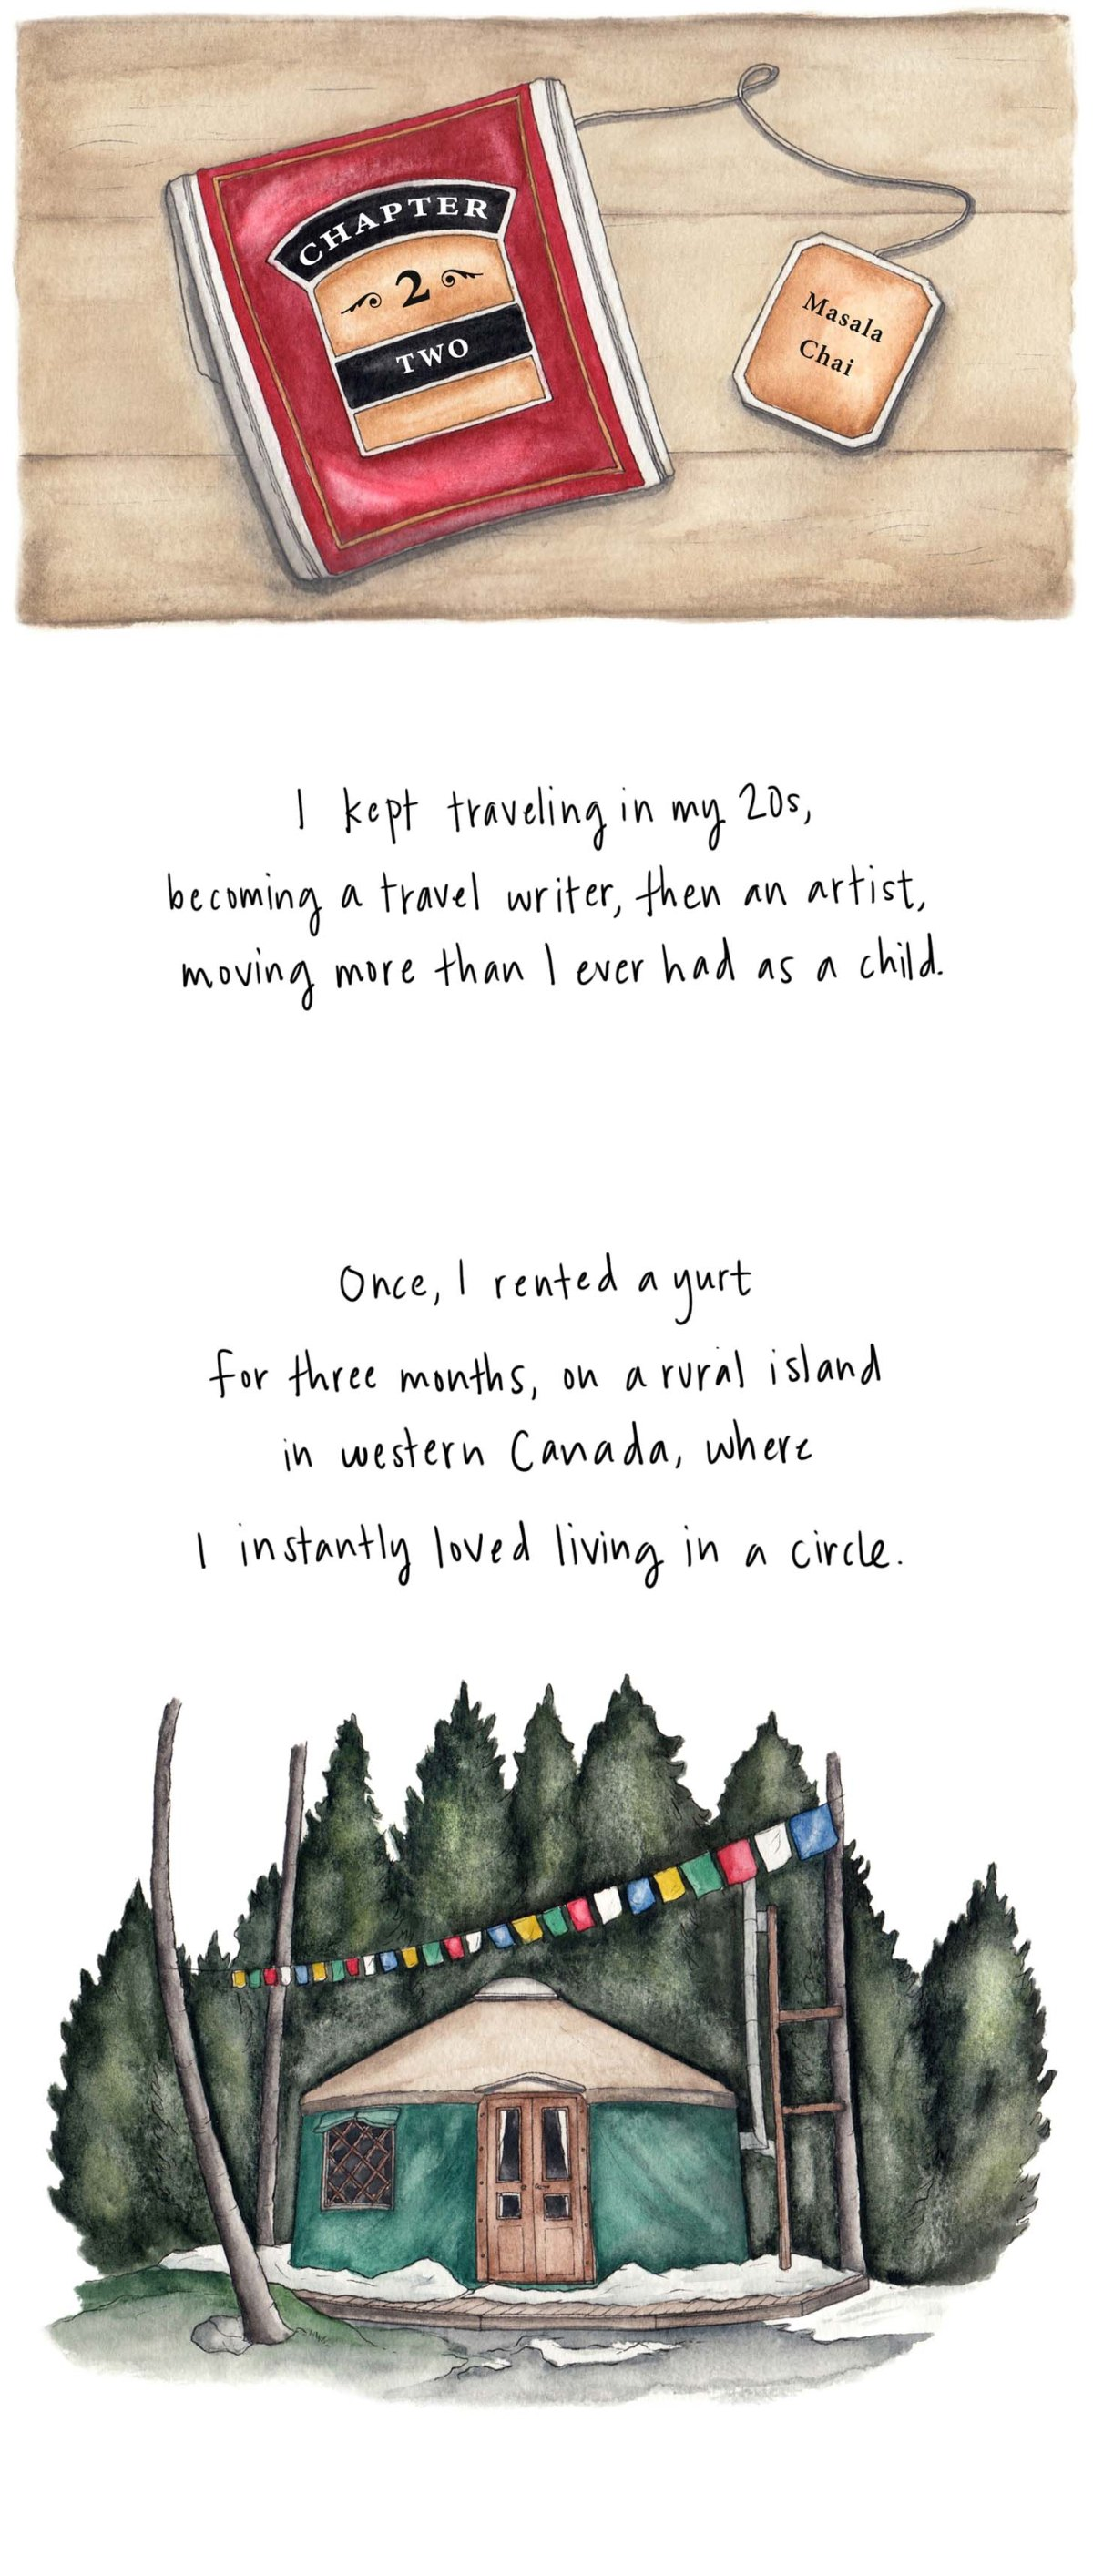 I kept traveling in my 20s, becoming a travel writer, then an artist, moving more than I ever had as a child. Once, I rented a yurt for three months on a rural island in western Canada, where I instantly loved living in a circle.